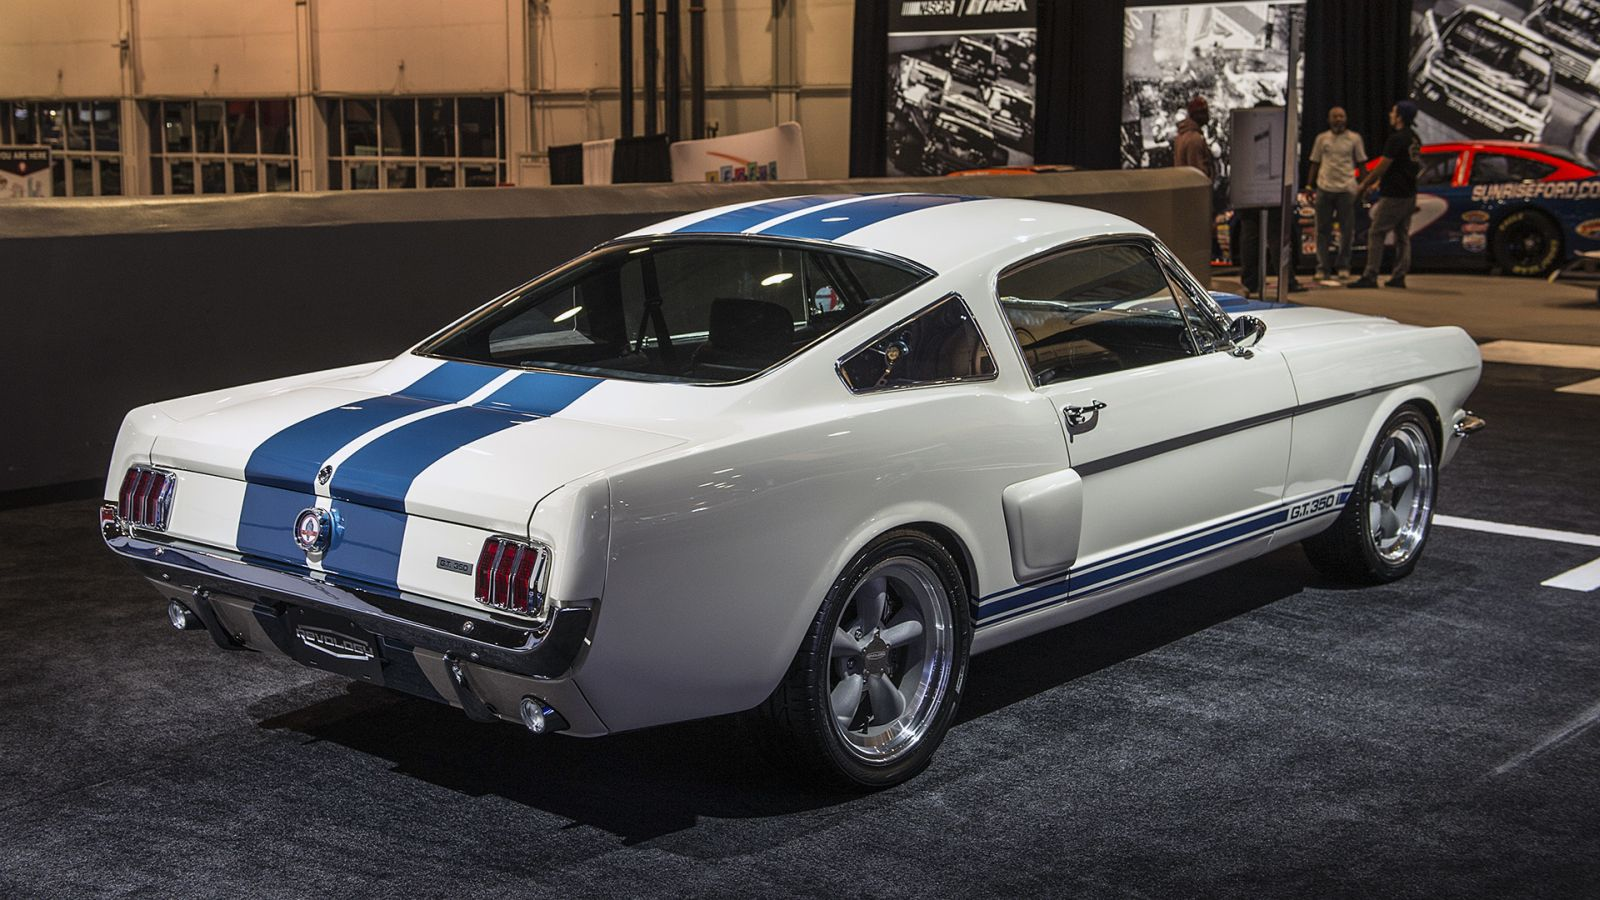 Revology Fod Mustang Shelby GT350